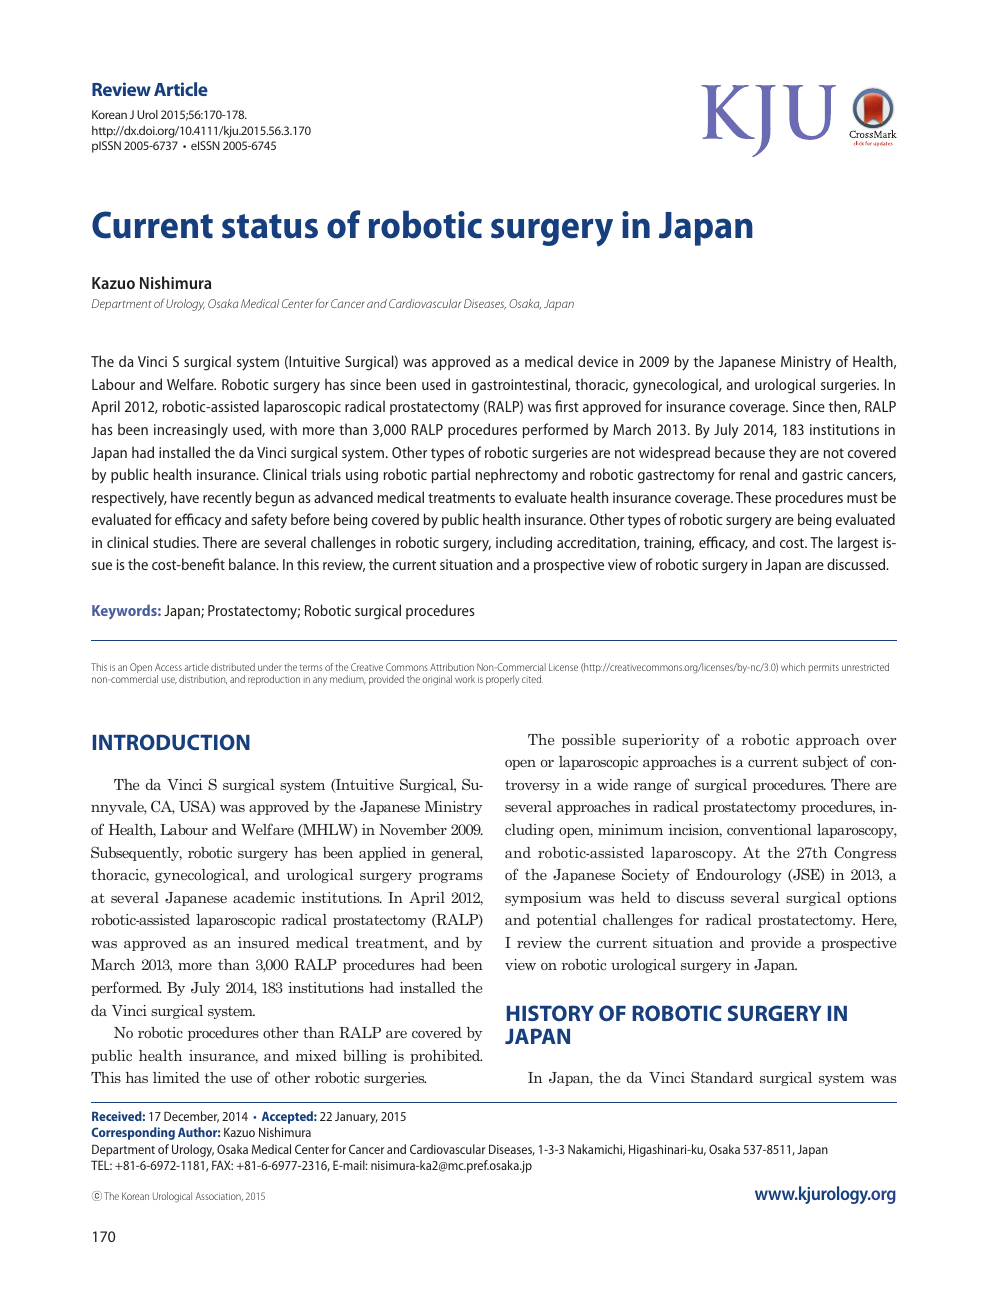 Current Status Of Robotic Surgery In Japan Topic Of Research